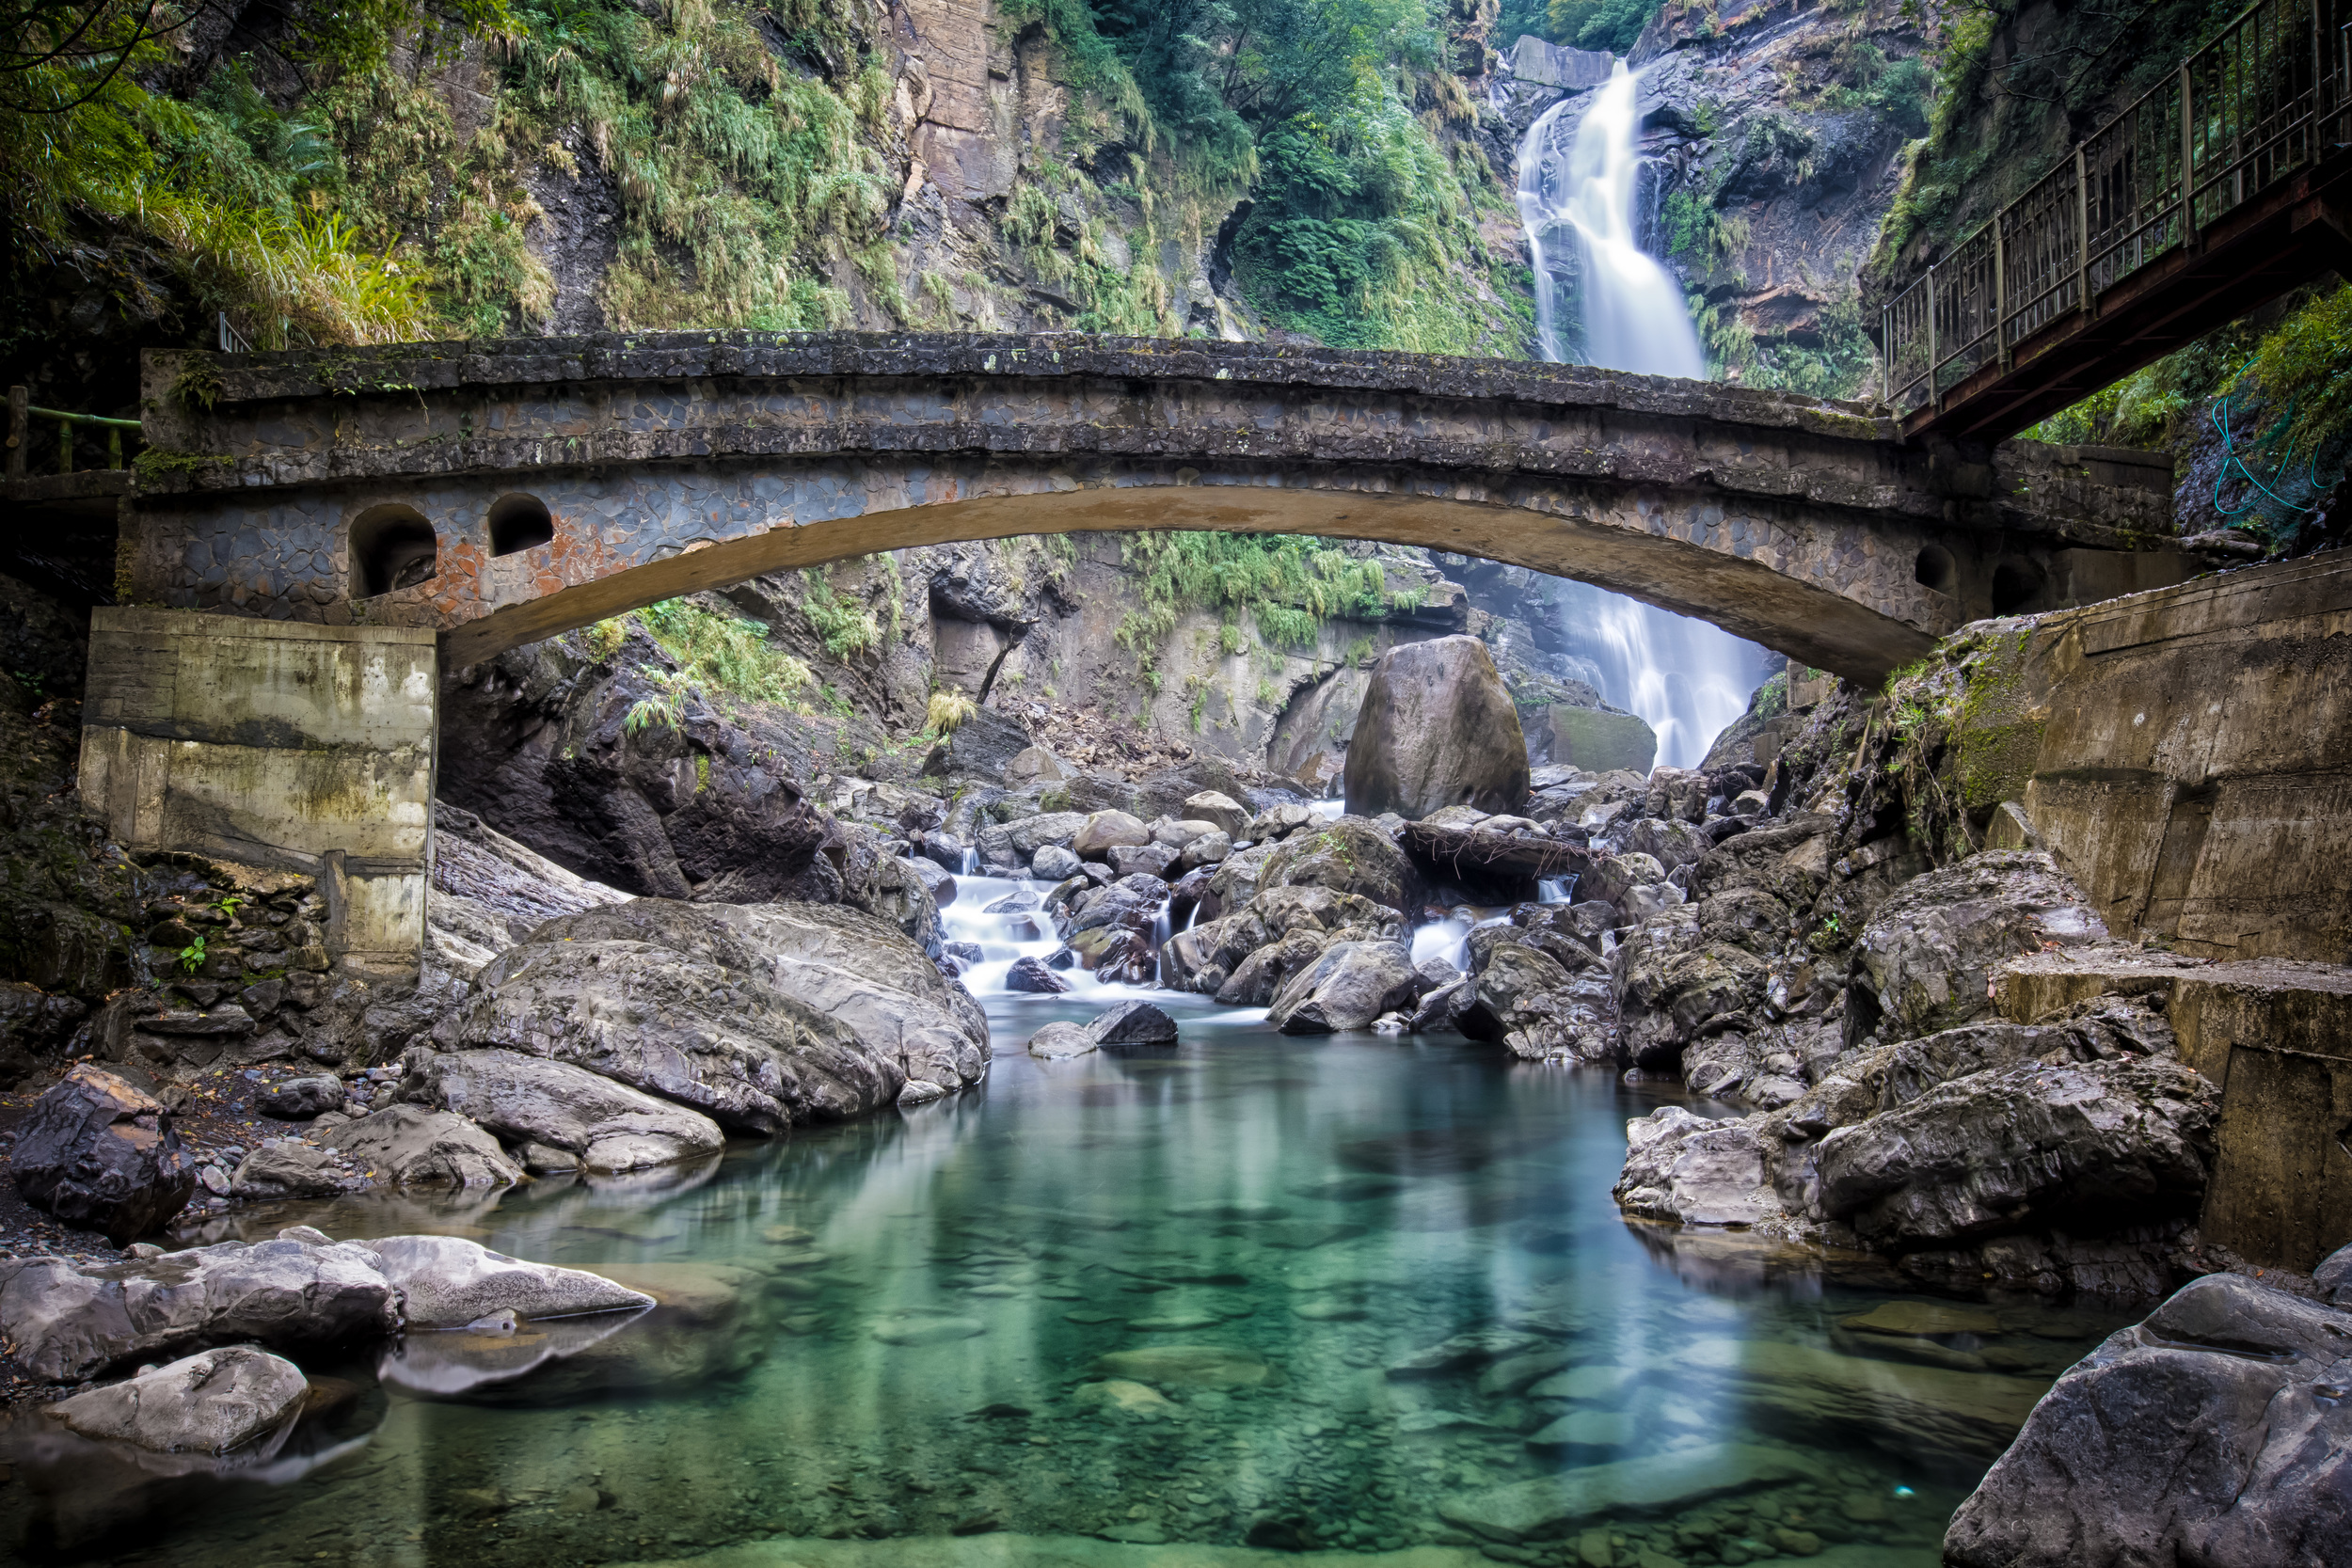 - Under the viewing bridge at the base of Xiao Wulai